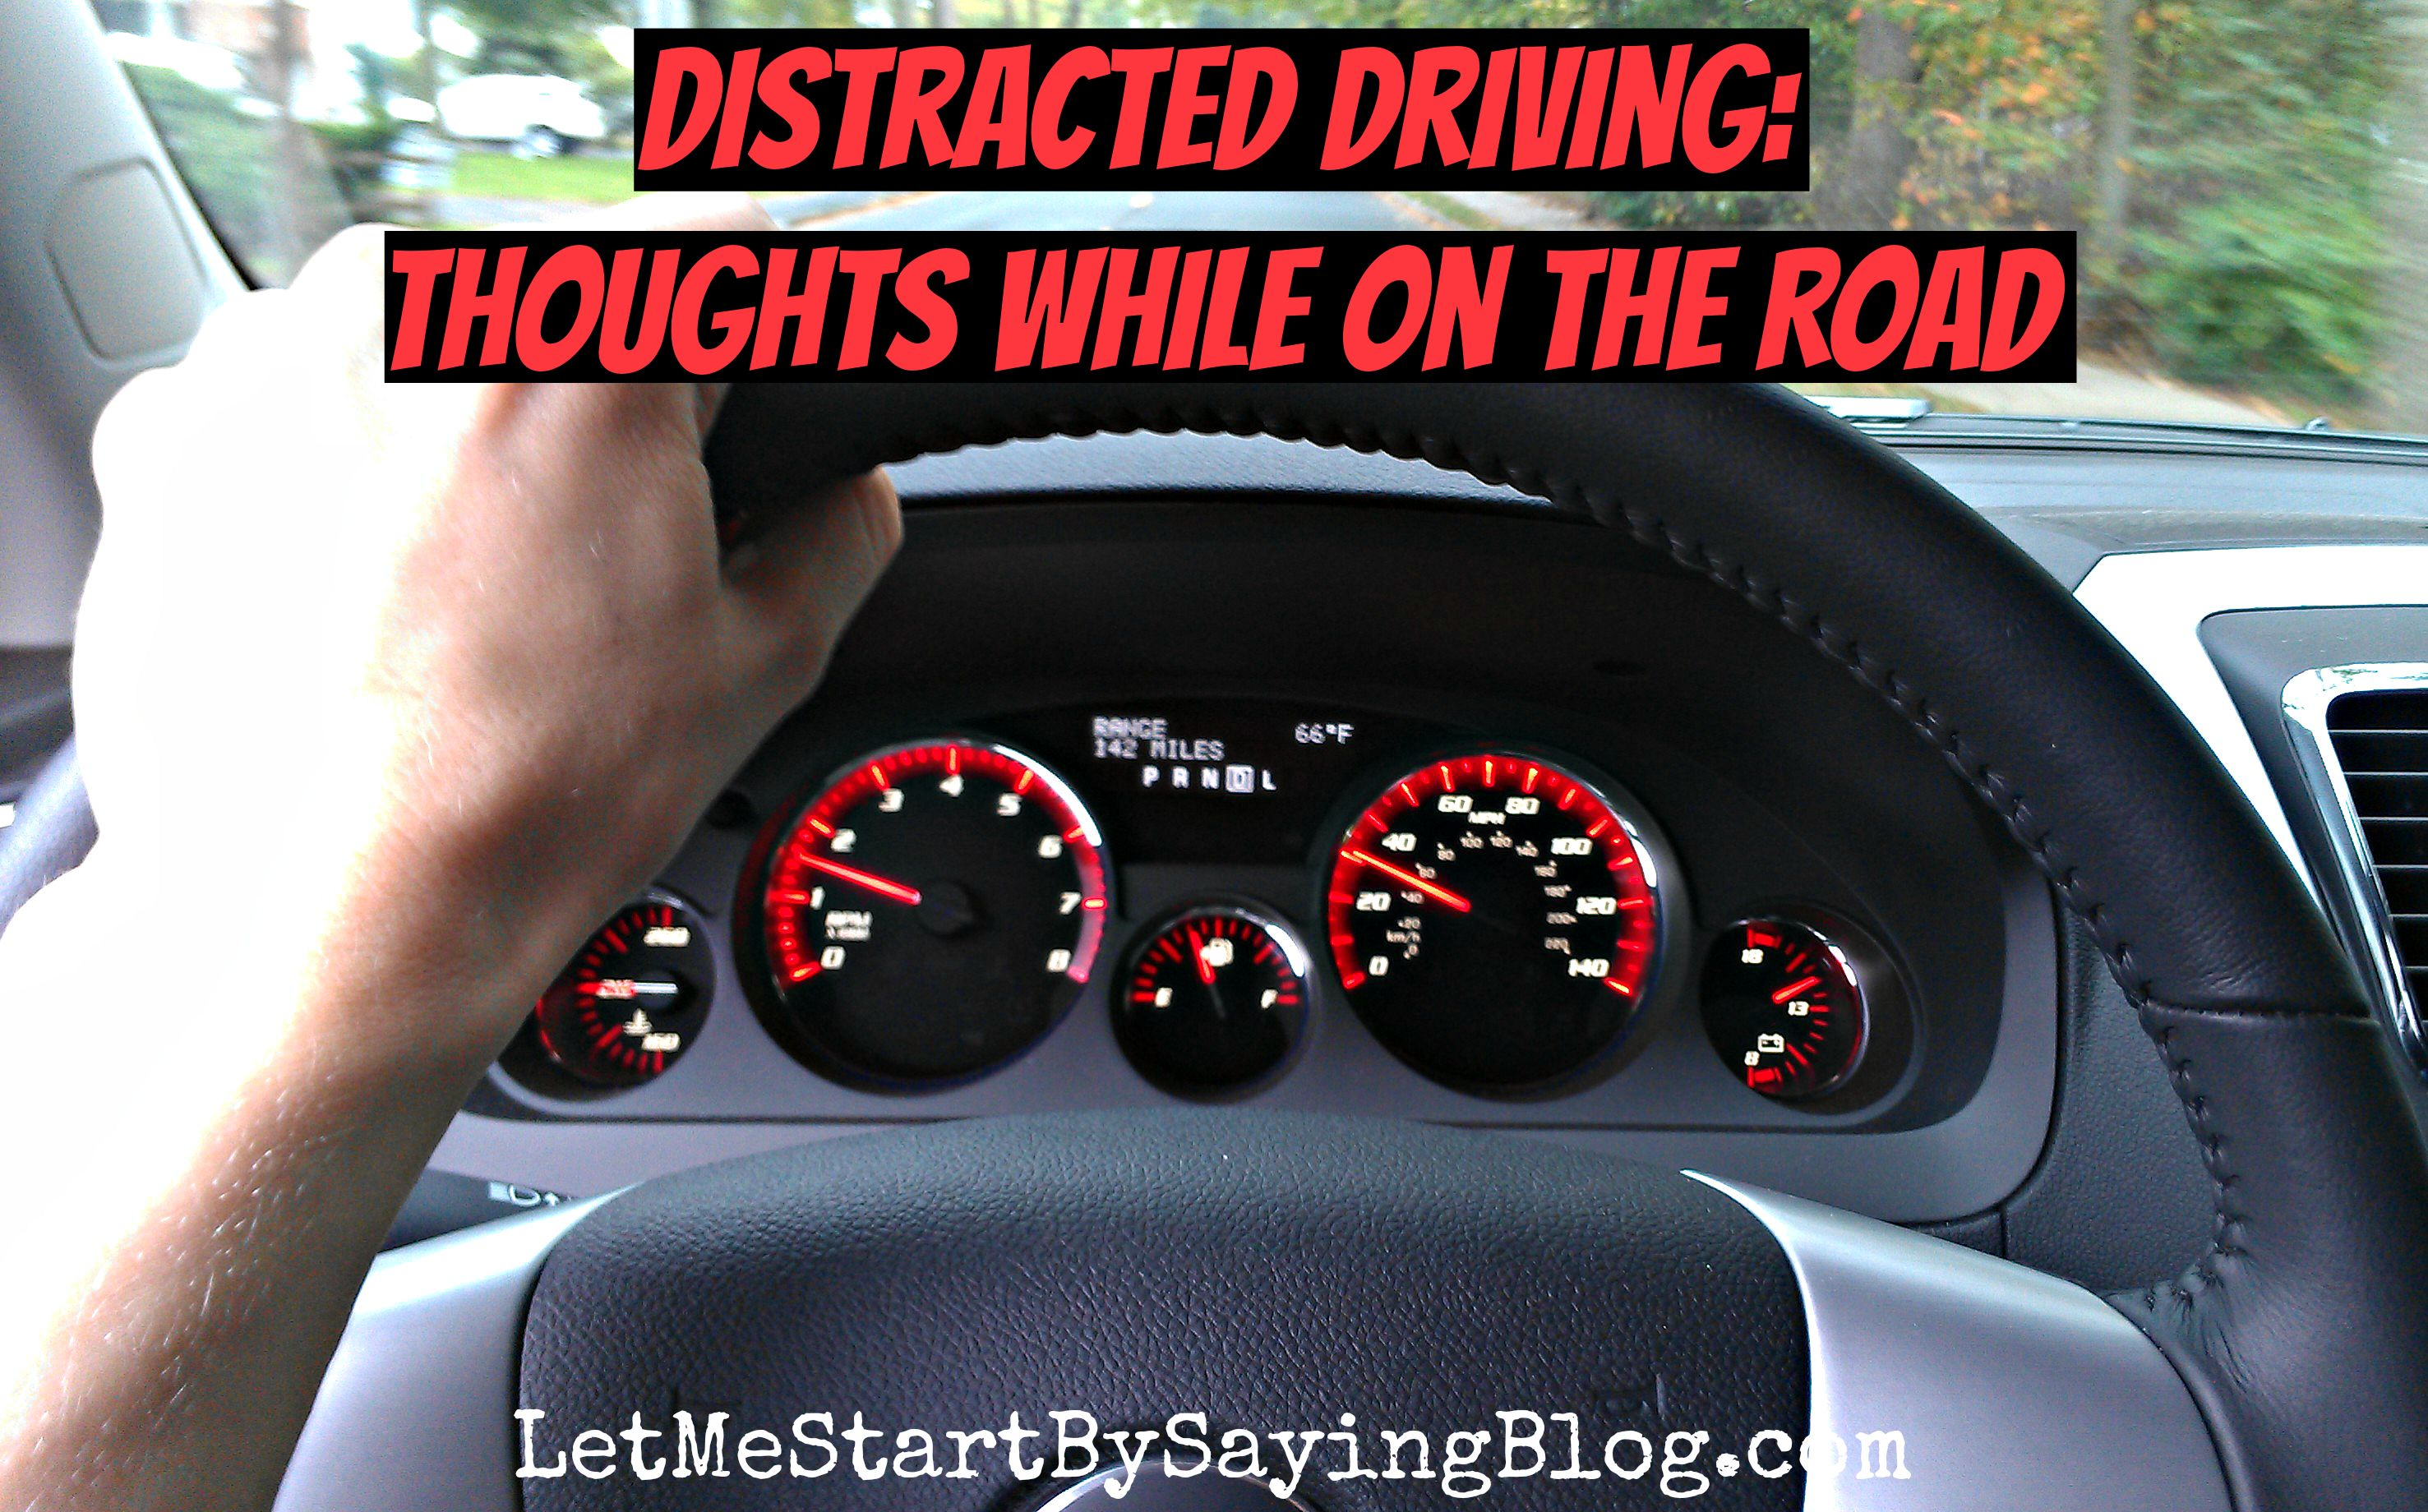 Distracted Driving Thoughts While on the Road